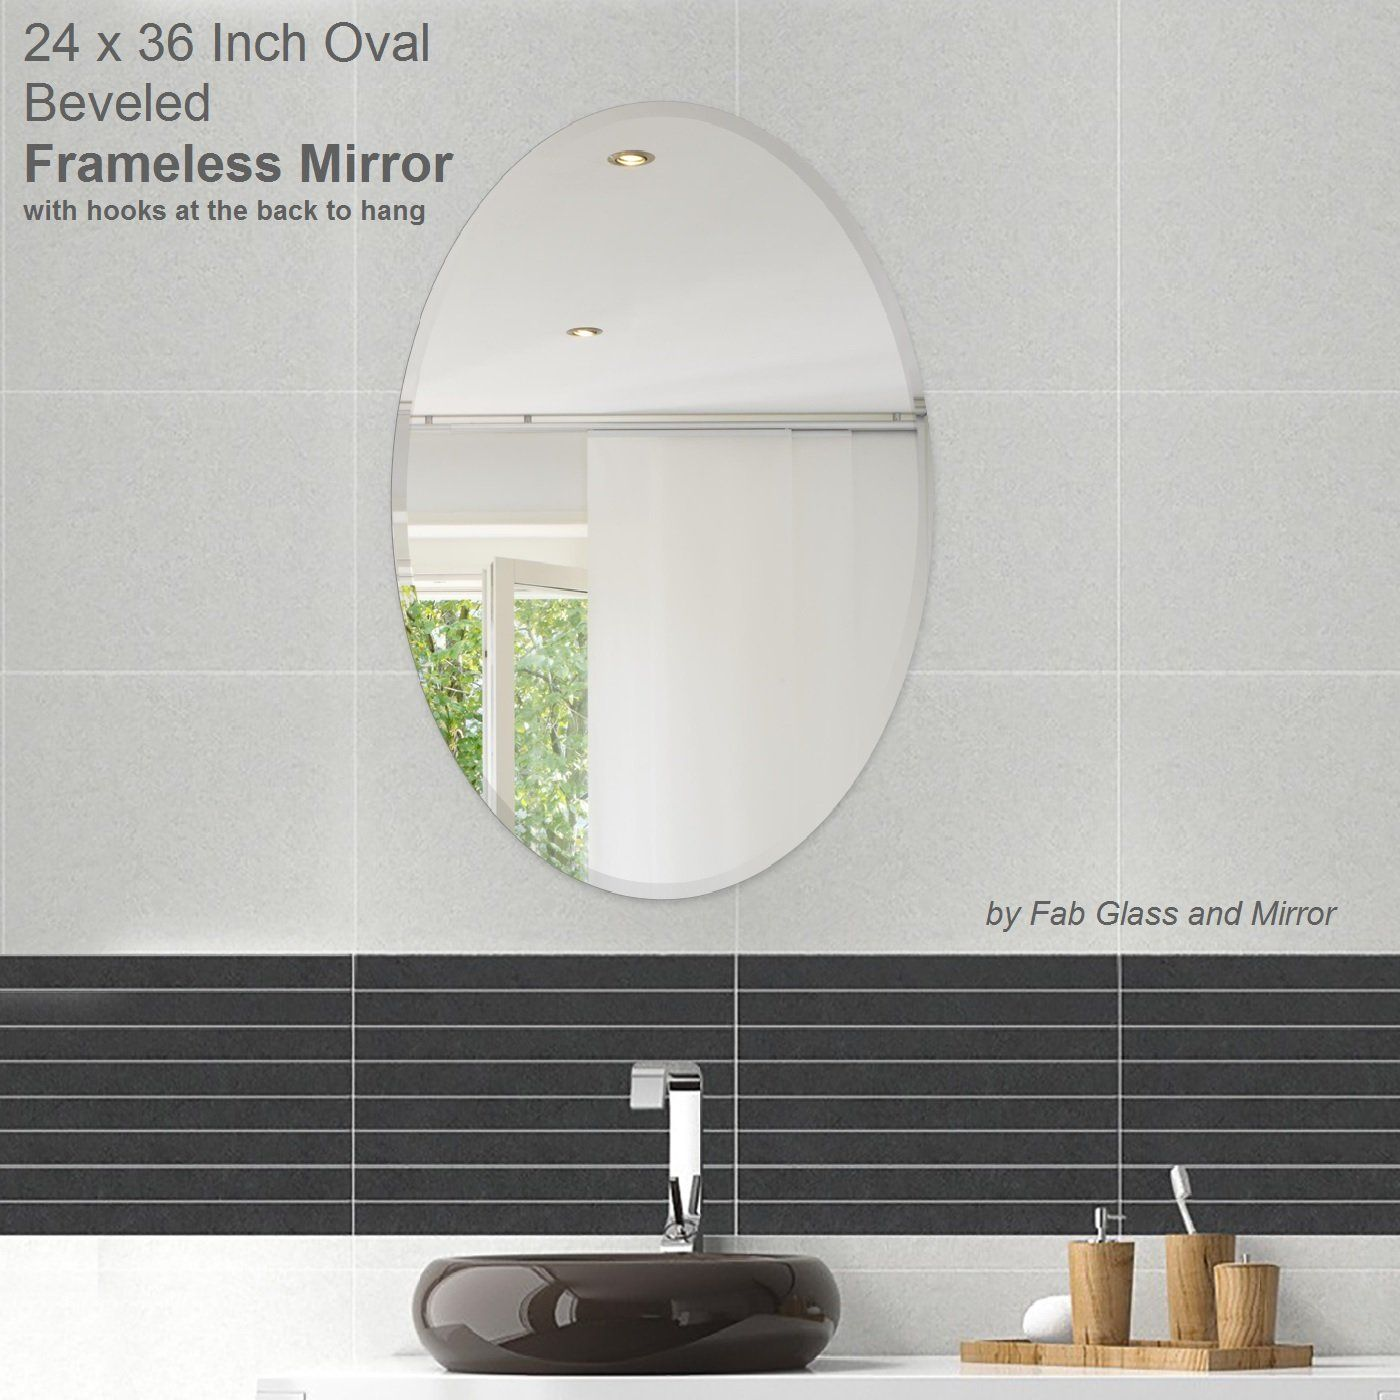 Fab Gl And Mirror Oval Beveled Polish Frameless Wall With Hooks L X W Polished Edge Safety